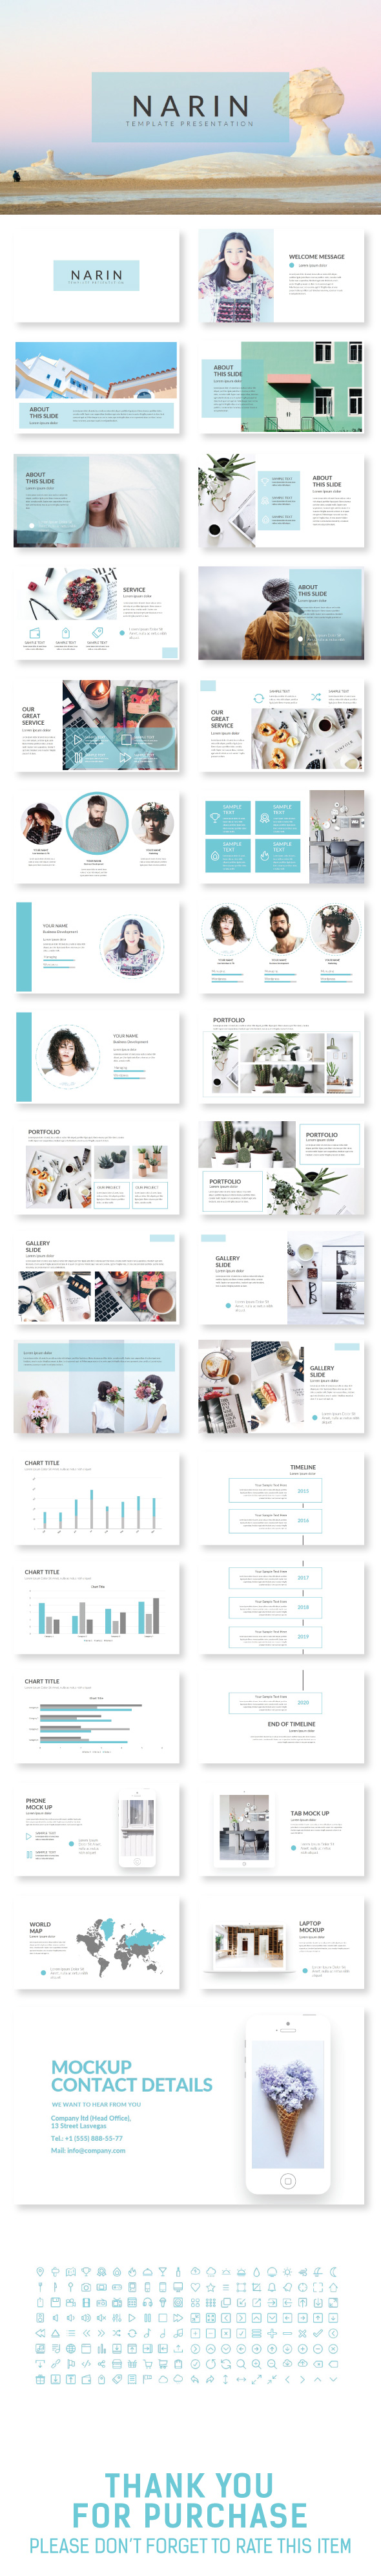 NARIN Presentation Template - Creative PowerPoint Templates